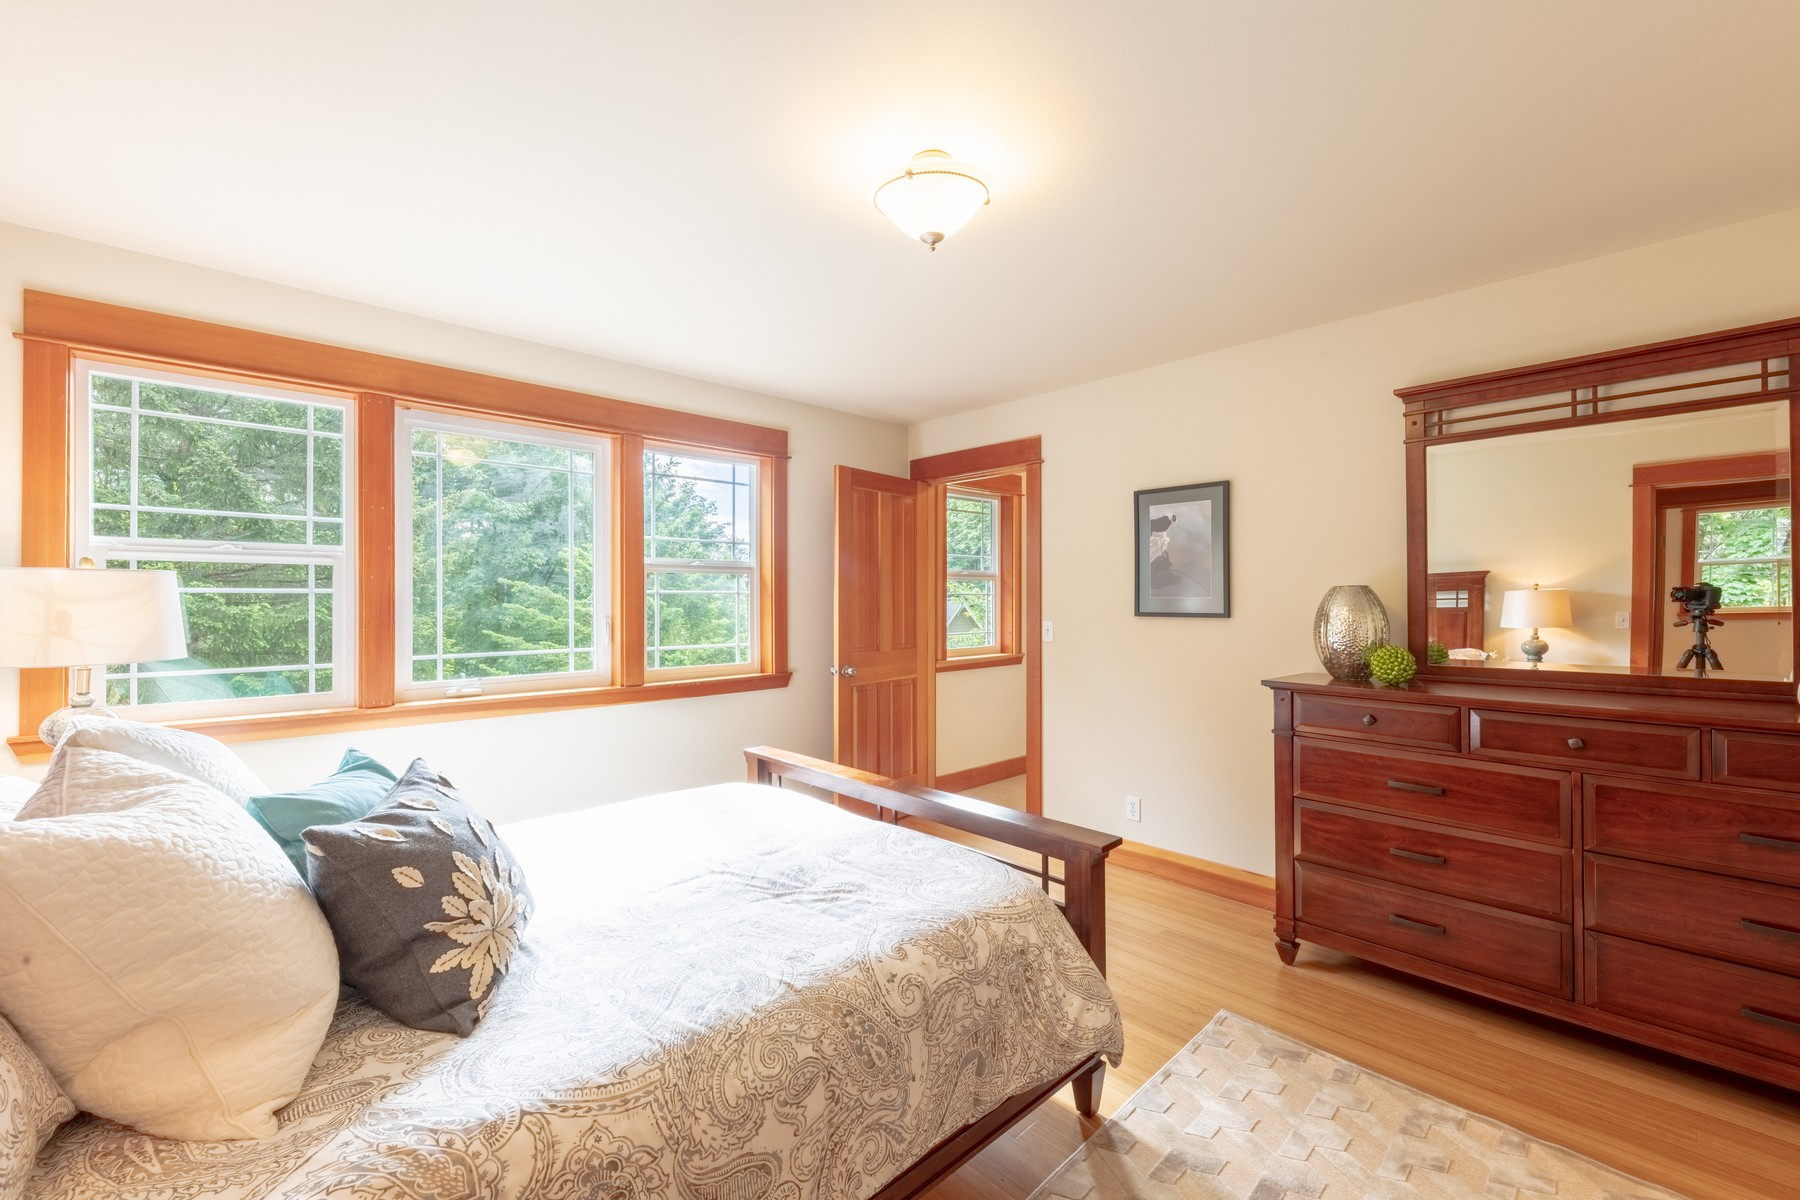 The  east  bedroom  is  filled  with  morning  light  and  incudes  a  walk-in  closet  and  bamboo  flooring.    Don't  need  4  bedrooms?    Than  this  is  the  perfect  exercise  room.